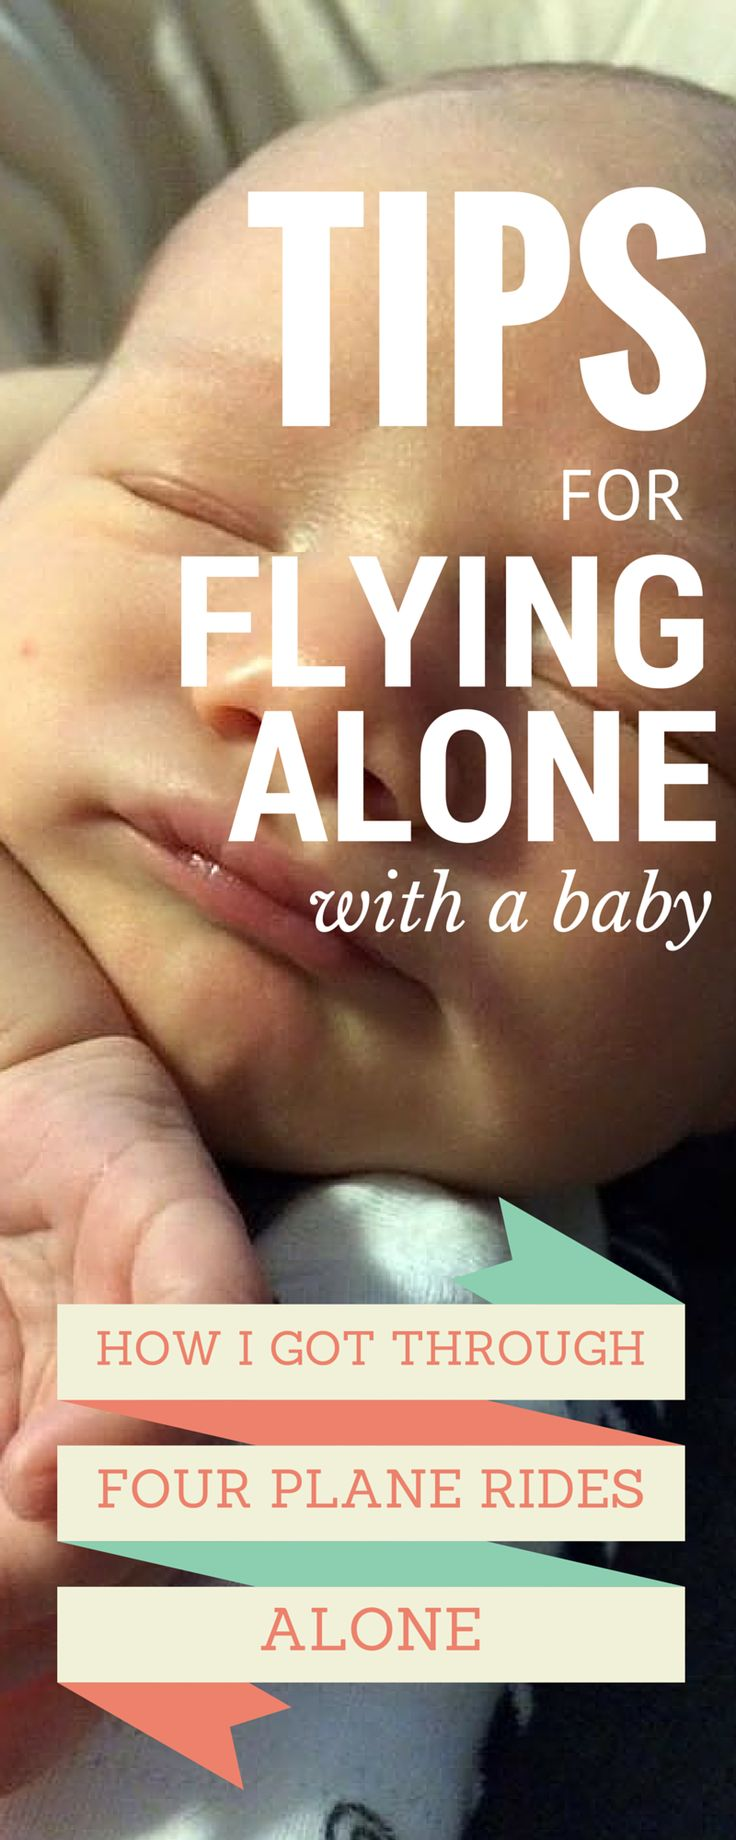 Being a military spouse sometimes mean traveling alone with a infant or child (yikes!) By the time my son was 2 months old, he had been on eight planes. I was on my own for four of them. Heres how I got through it and how you can too! Tips and advice included!